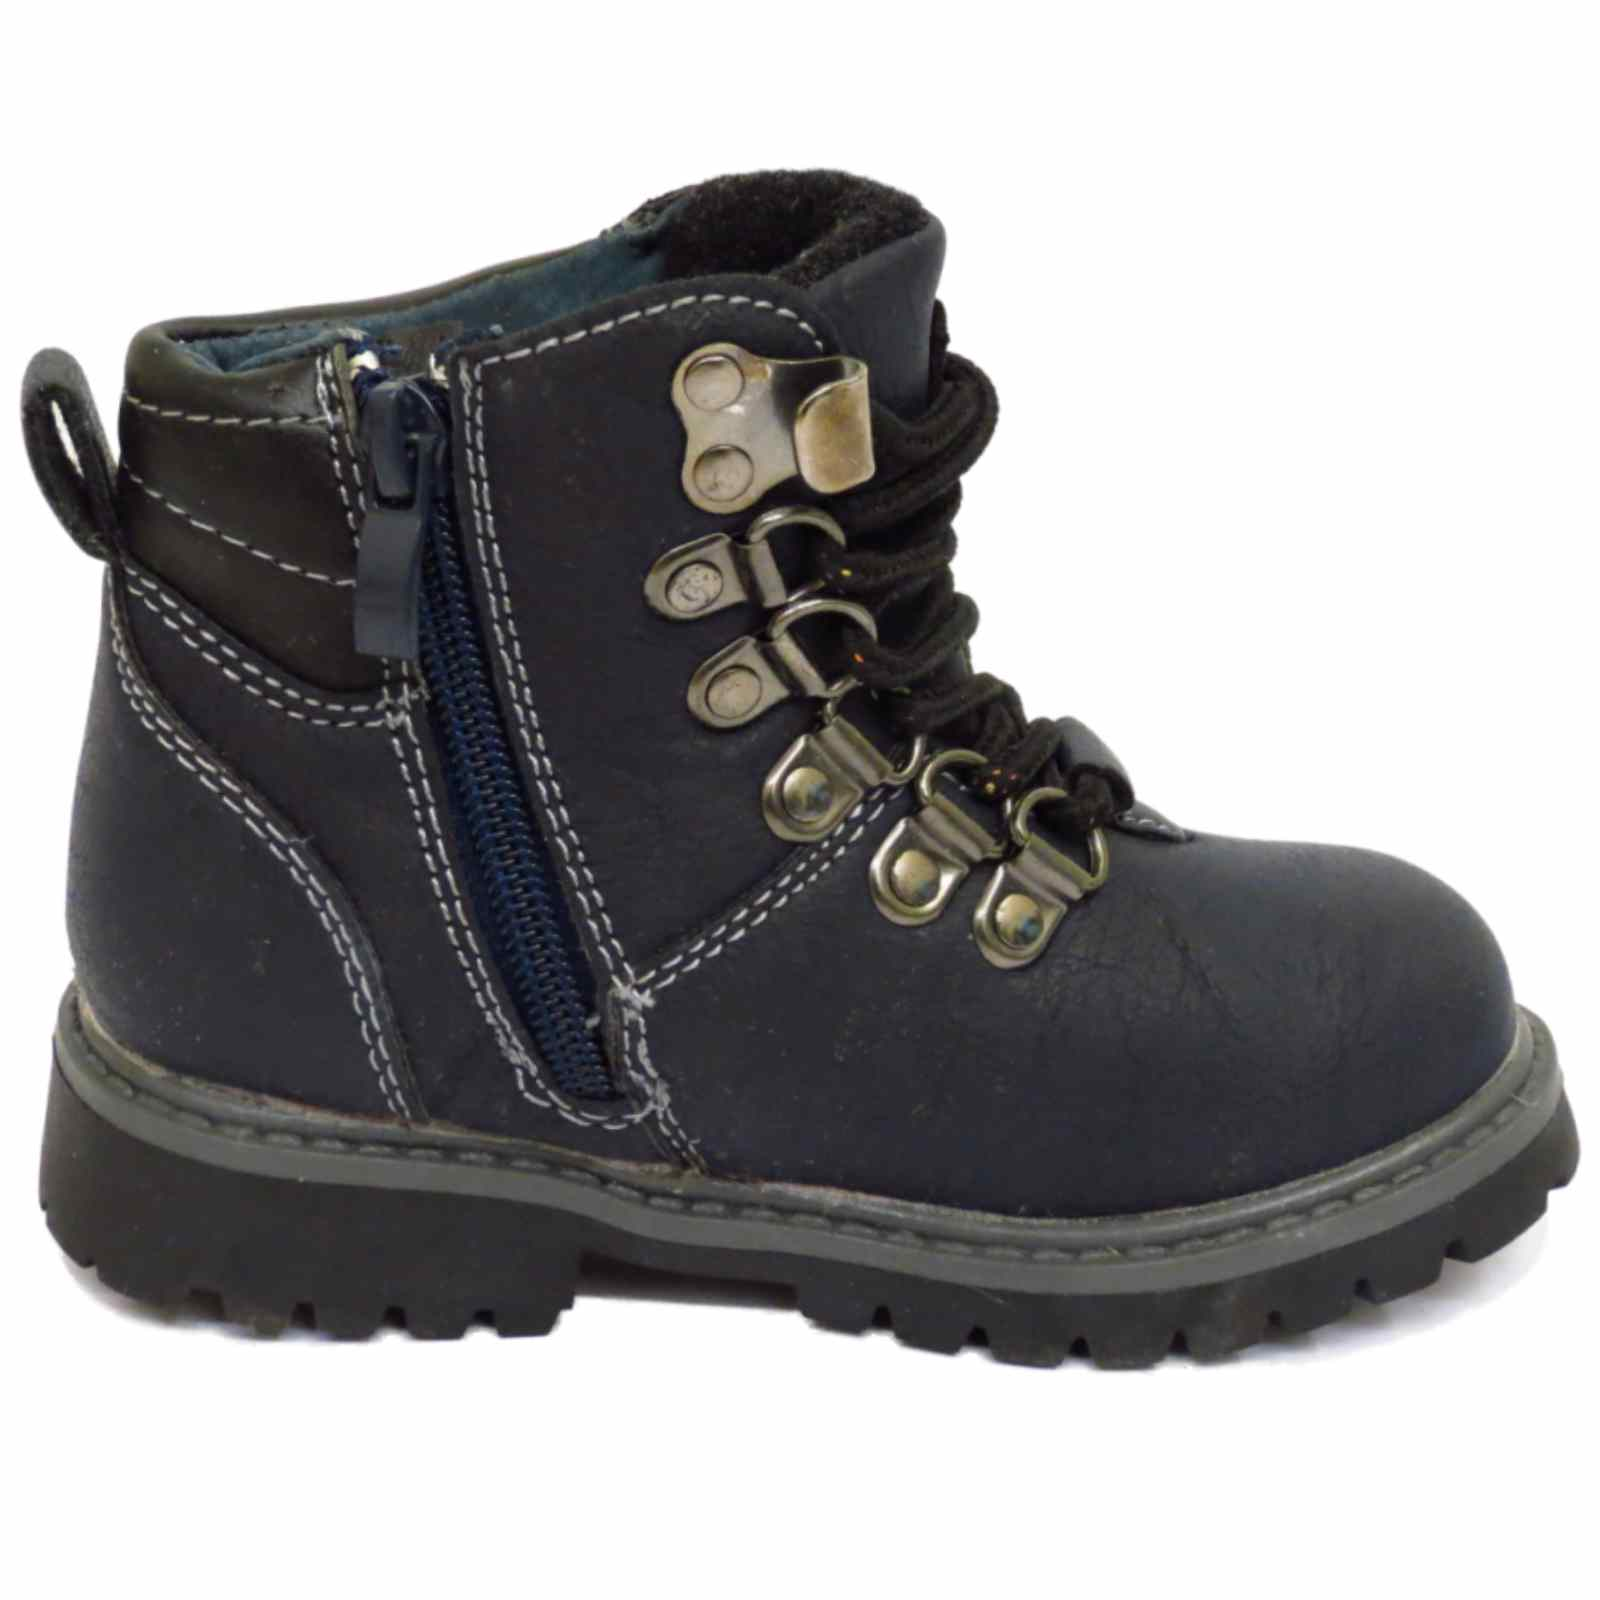 Shop Bogs kids' boots clearance sale! % waterproof, lightweight and slip-resistant.